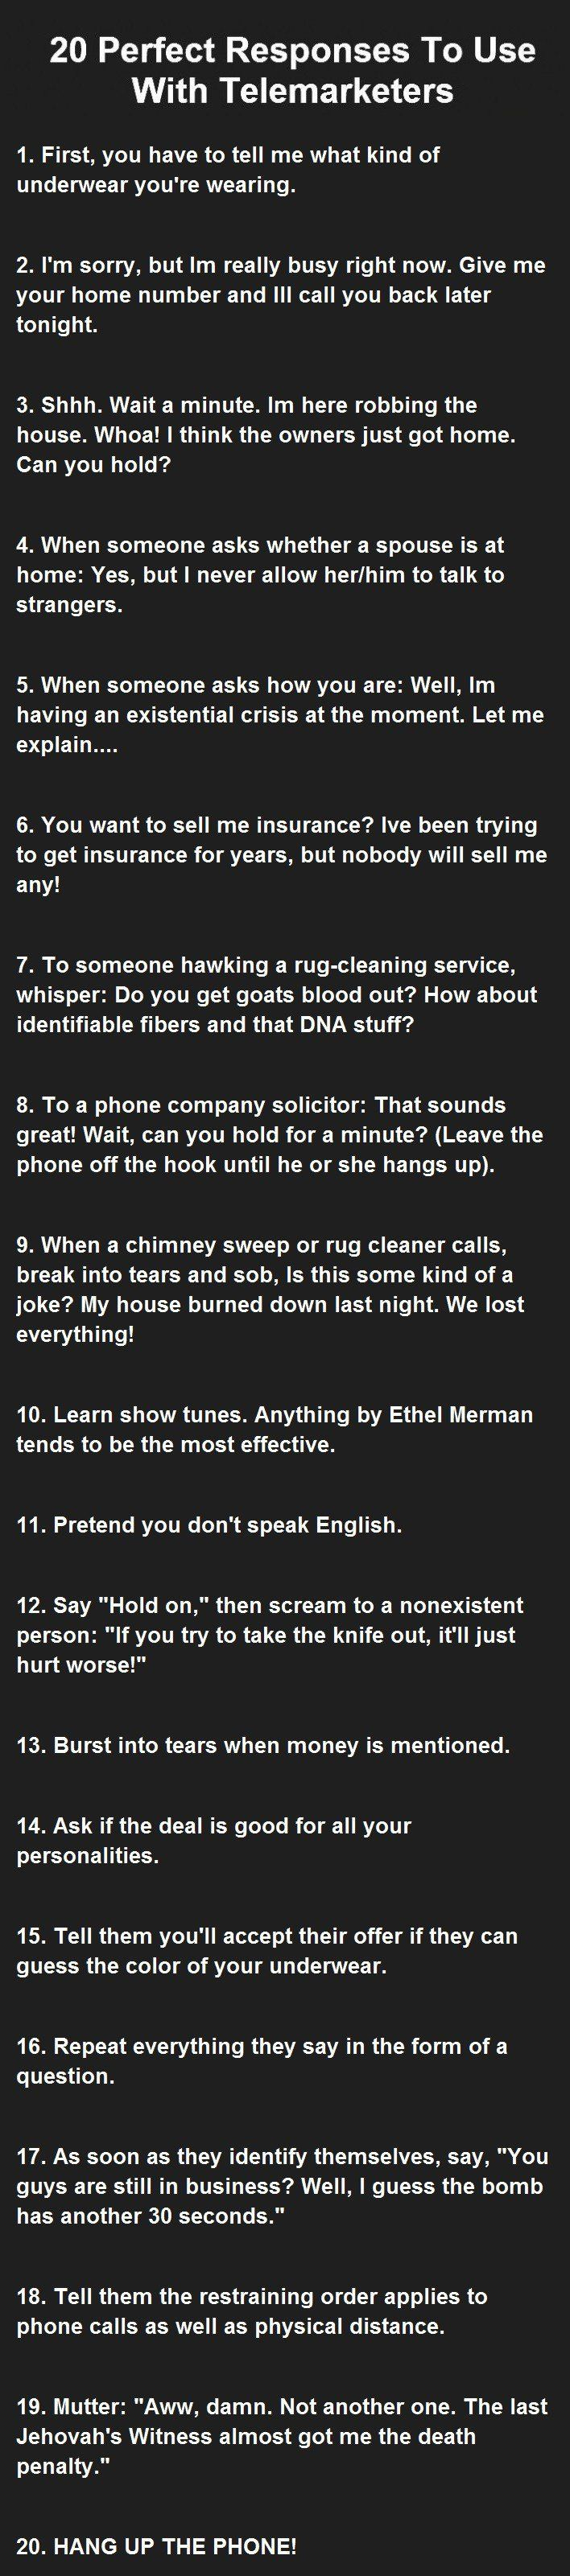 20 Perfect Responses To Use With Cold Callers